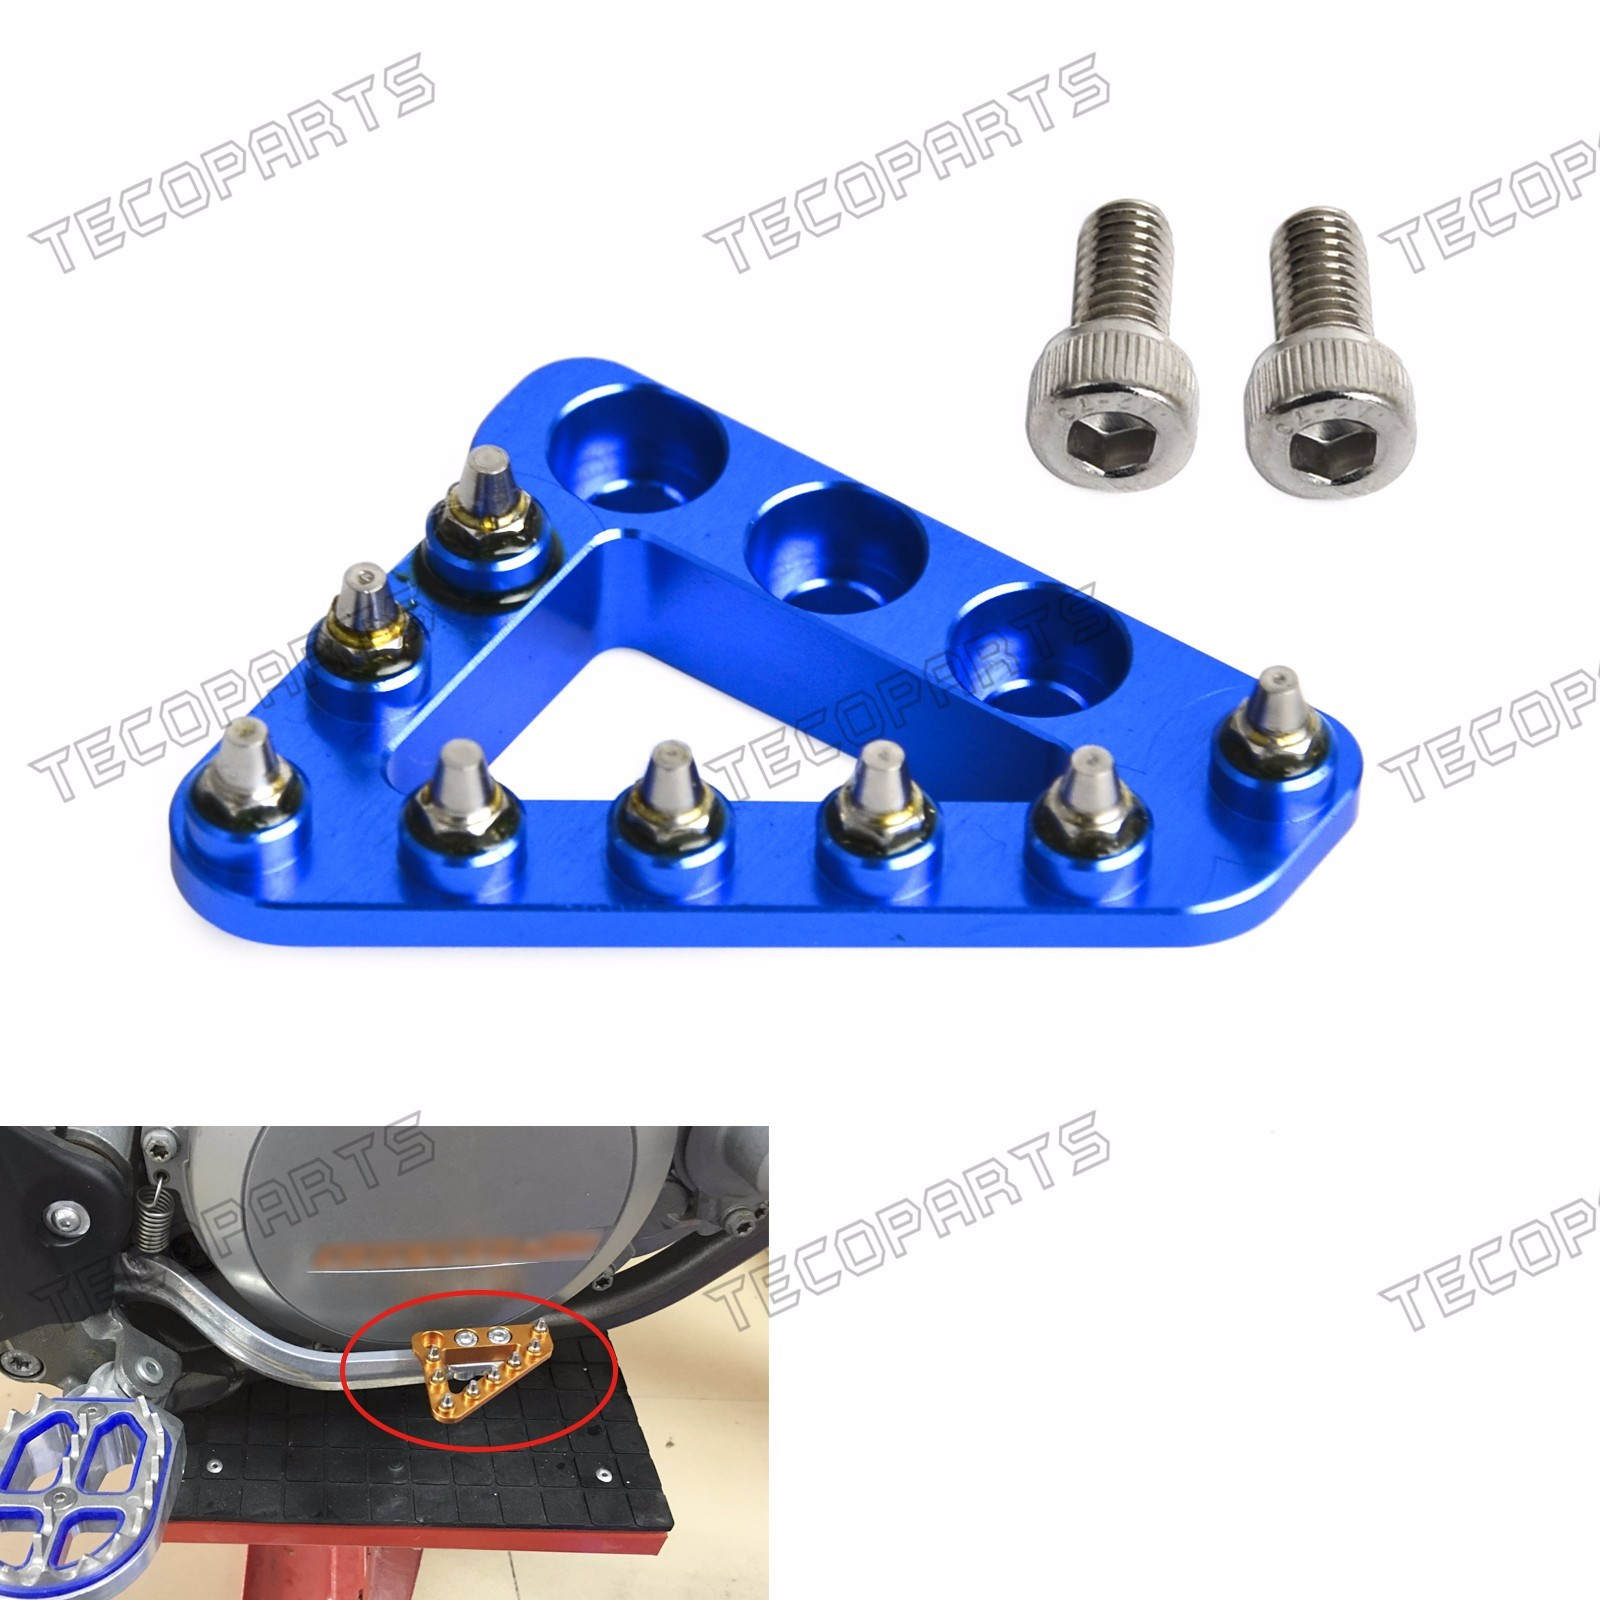 also compatible with select OEM Beta Husqvarna /& KTM pedals Hammerhead Replacement Rear Brake Pedal Tip Rotating Silver